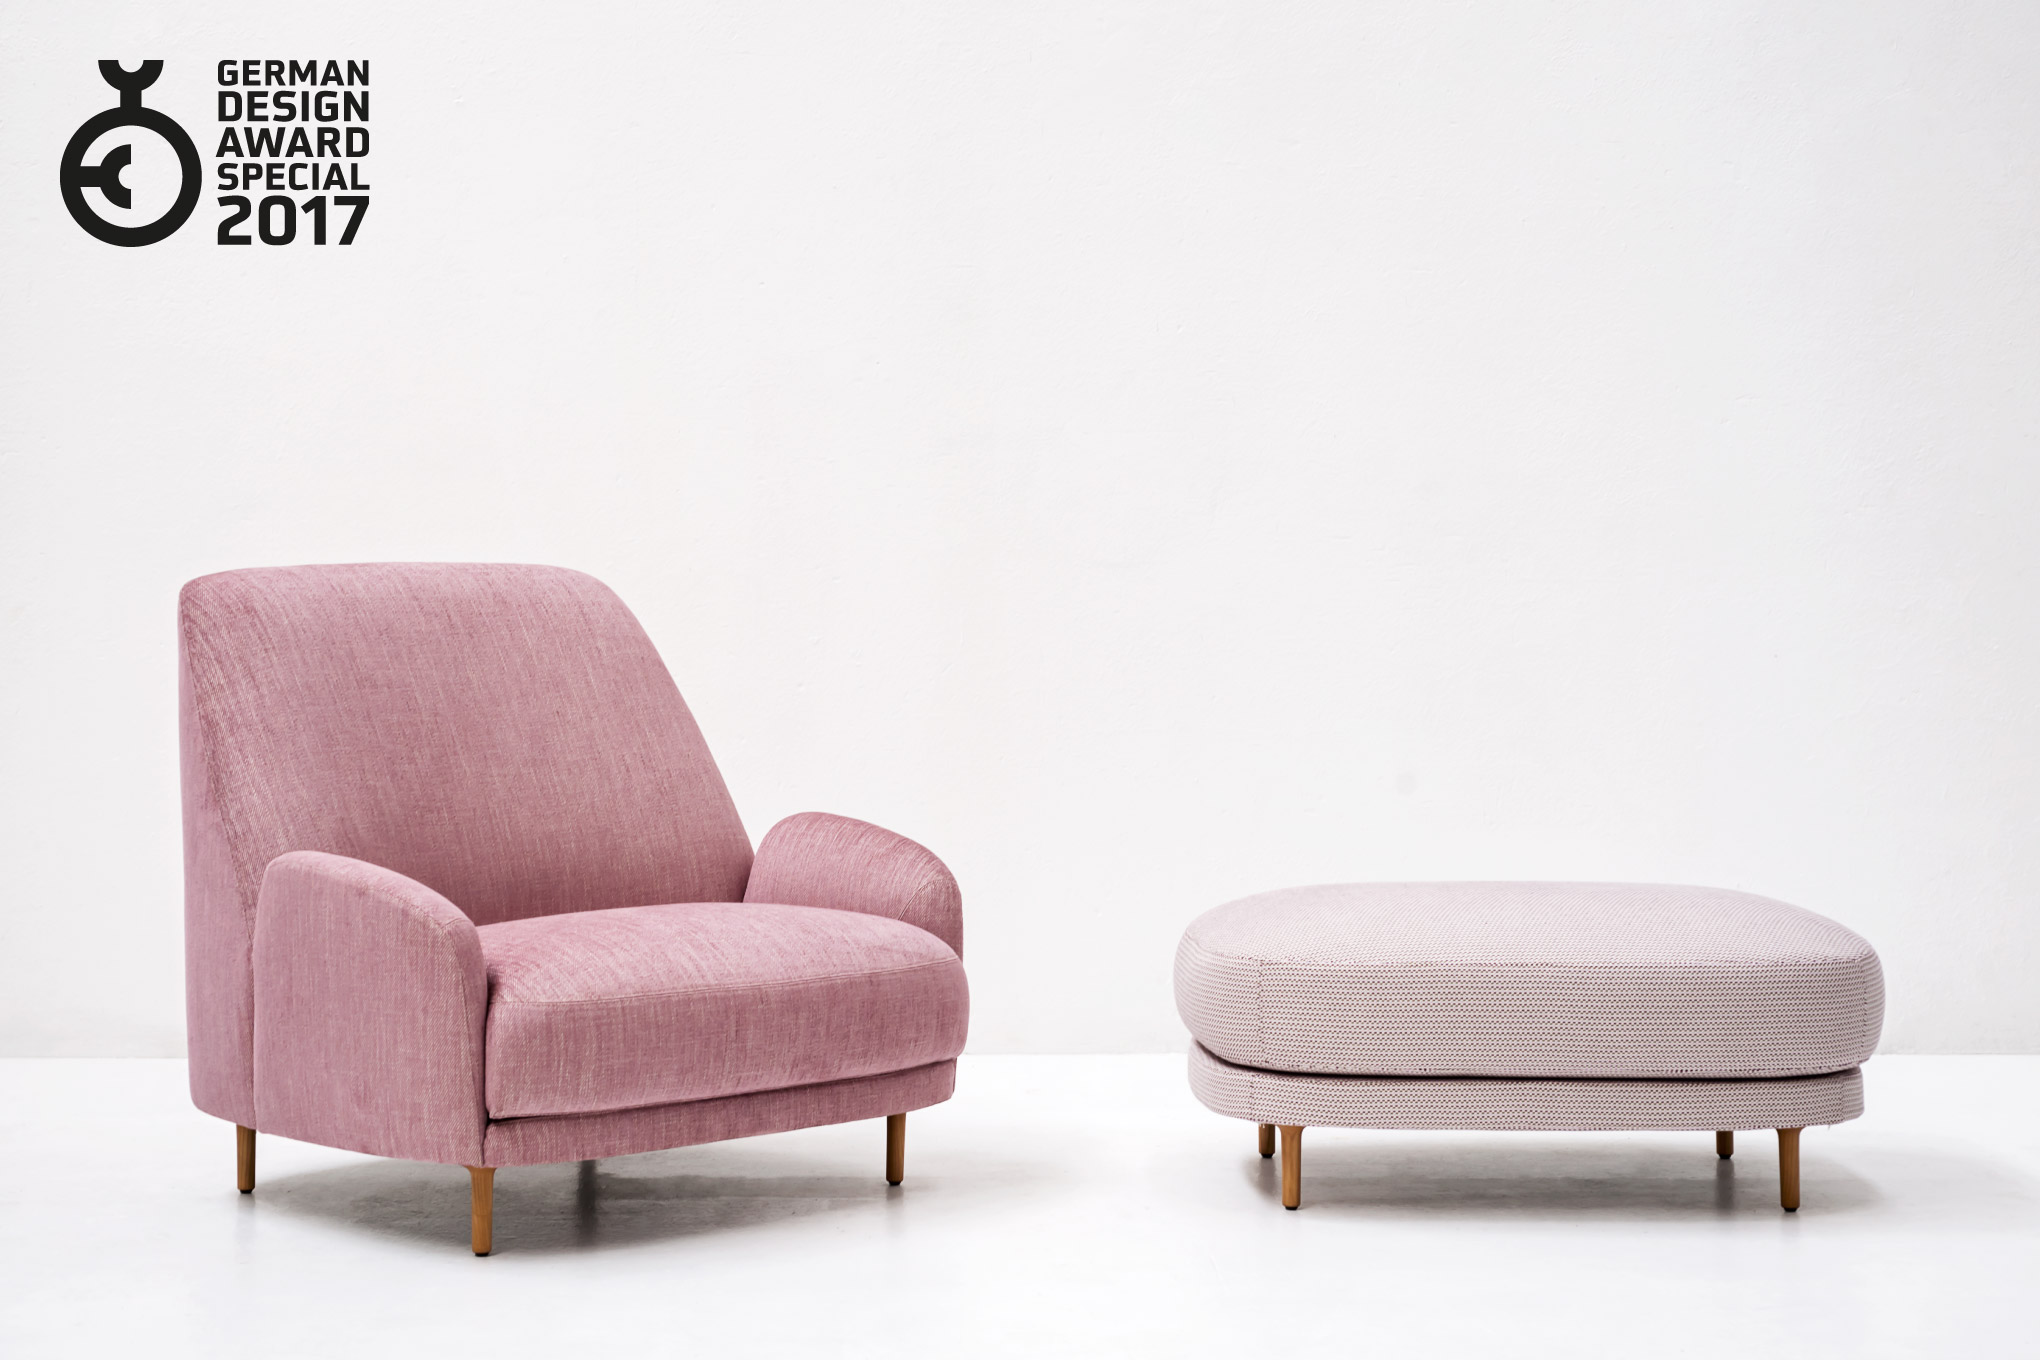 Awards | Tacchini on chaise furniture, chaise sofa sleeper, chaise recliner chair,